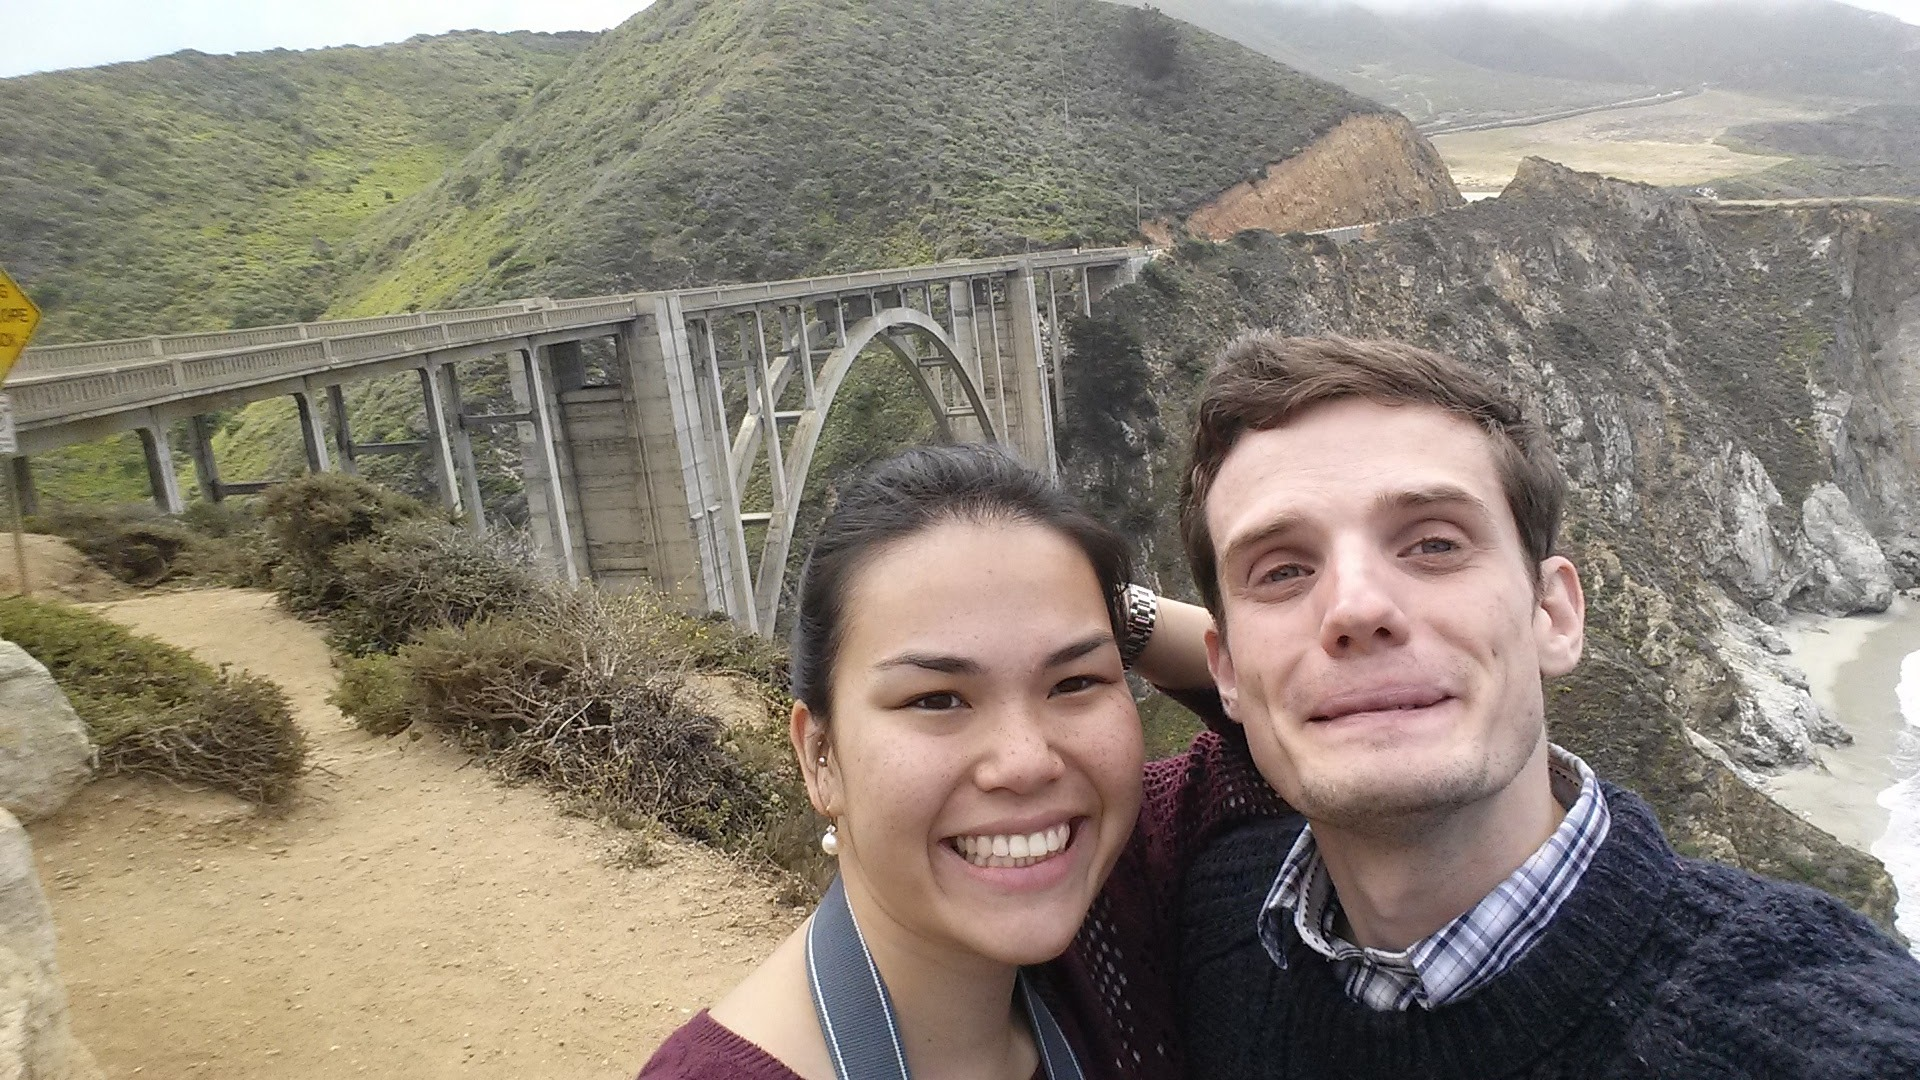 Our road trip to Big Sur during Gill's visit